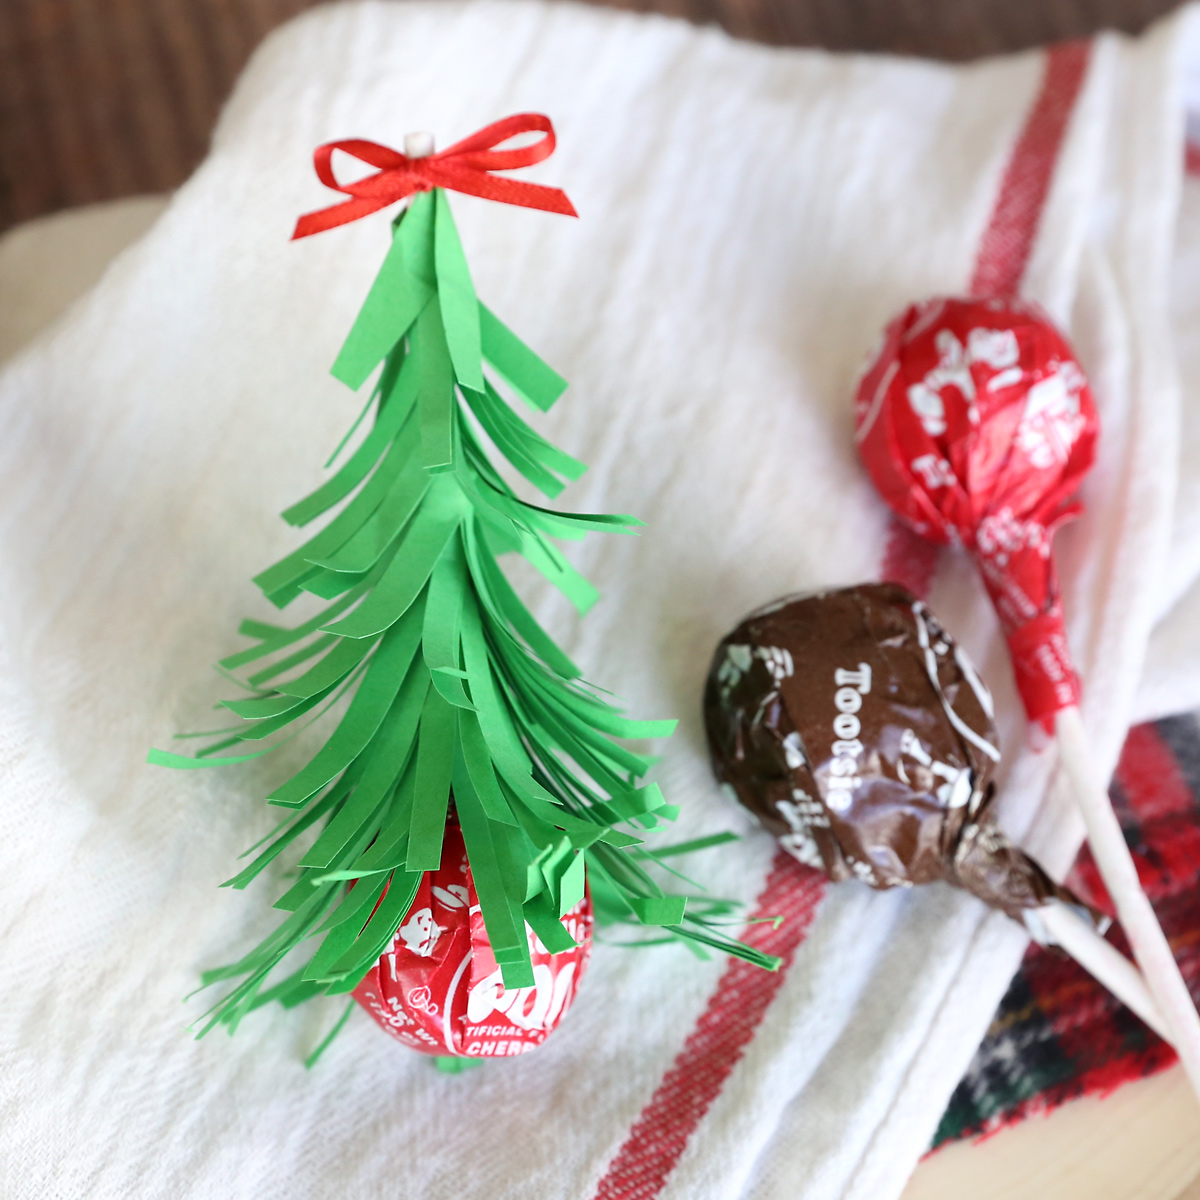 Tootsie pop sucker sitting upside down, with stick covered with strips of green paper to resemble Christmas tree